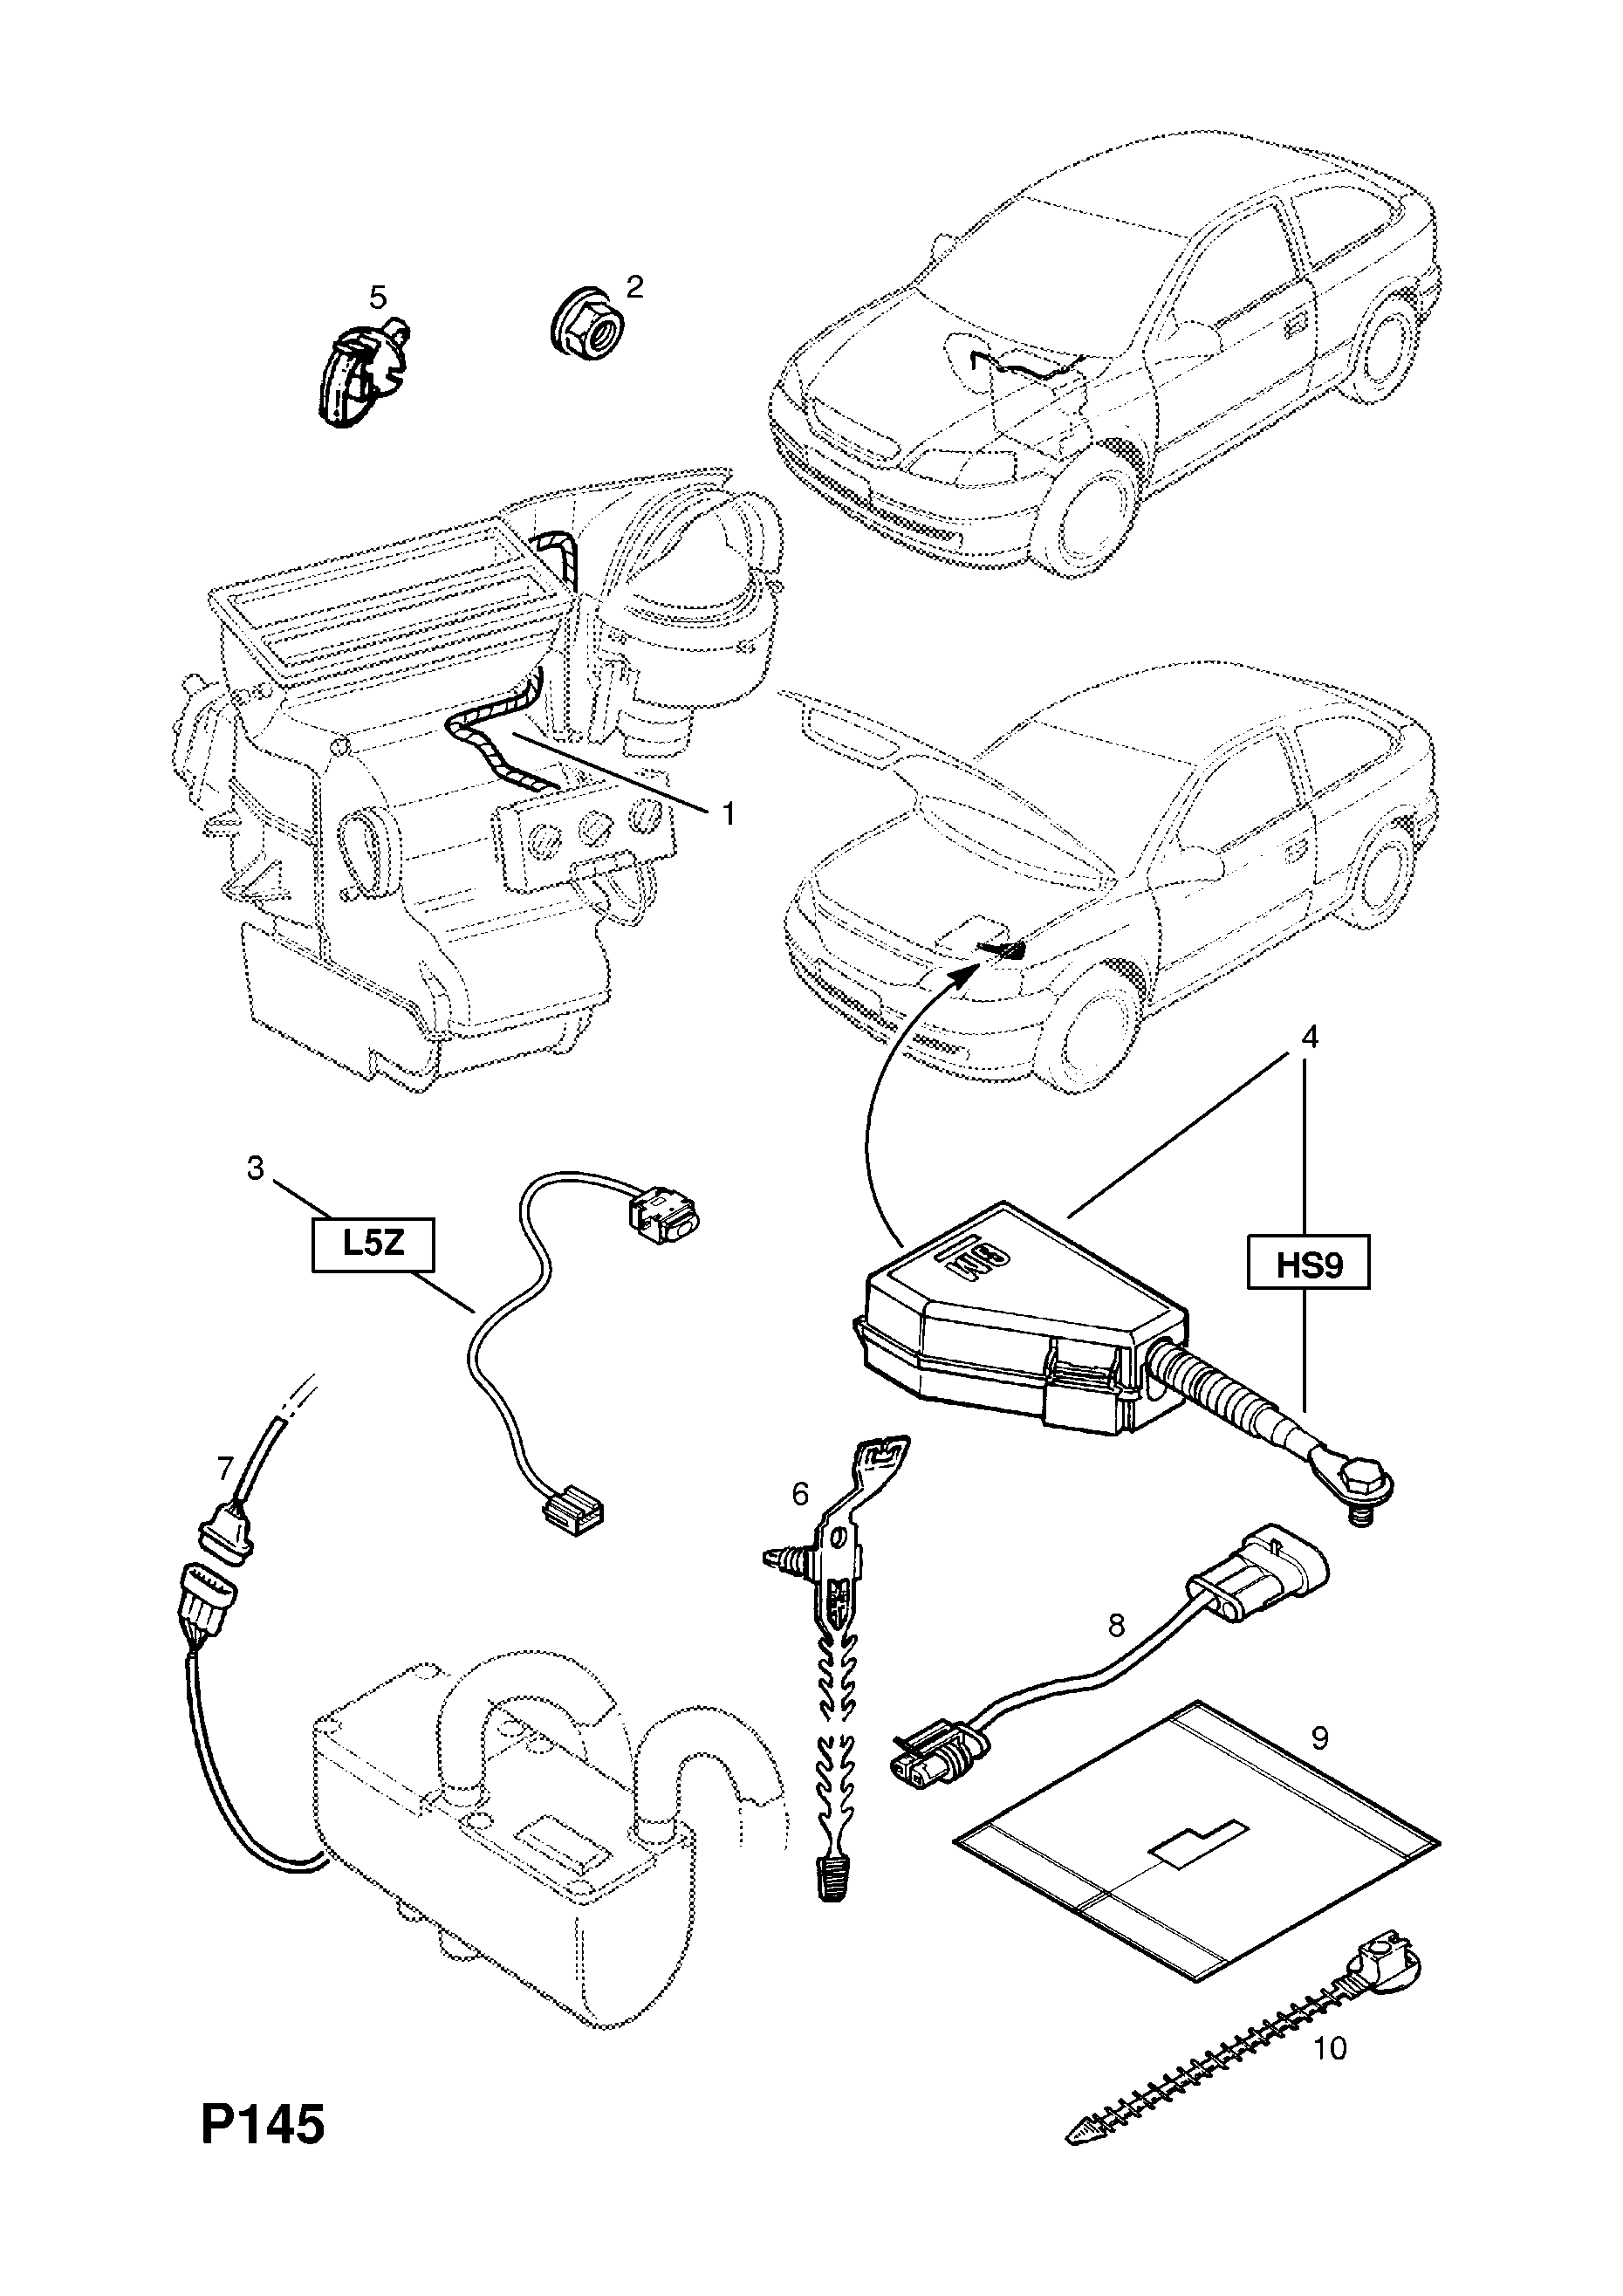 Opel Astra G Zafira A Electric Heater System Wiring Harness Fog Light Diagram Spare Parts Catalog Epc